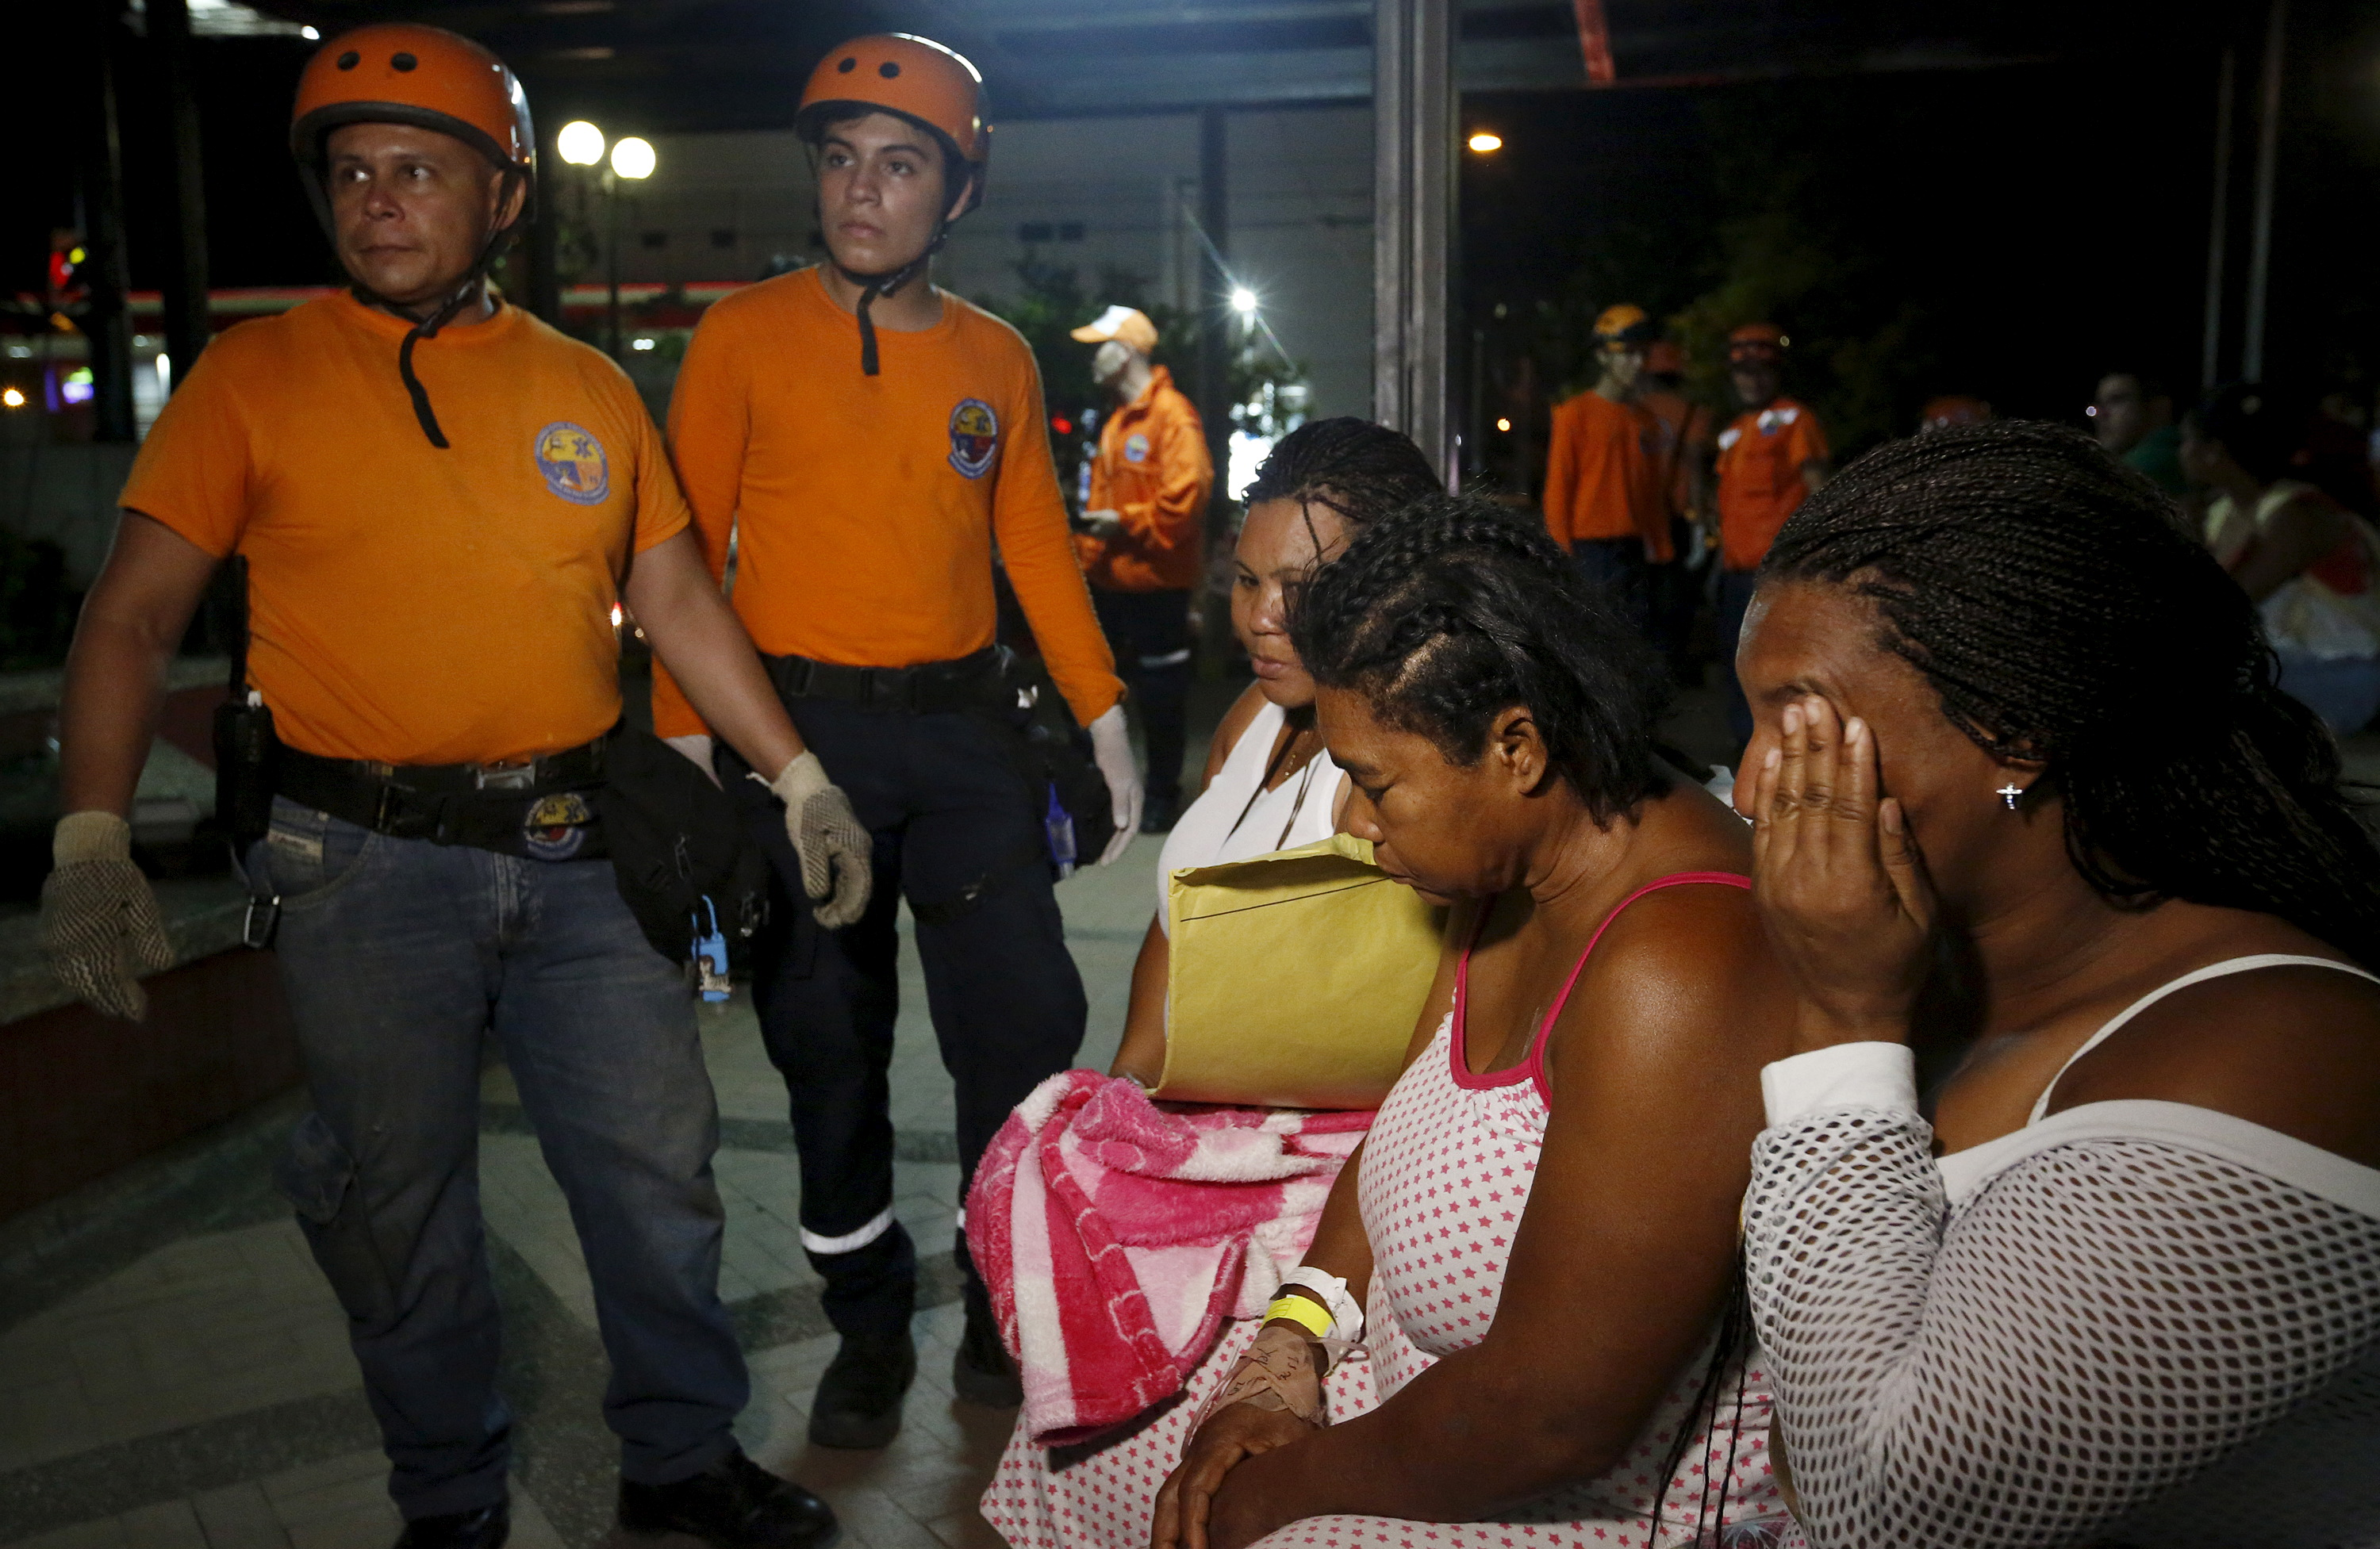 Rescue team members and patients react outside a clinic that was evacuated after tremors were felt resulting from an earthquake in Ecuador, in Cali, Colombia, April 16, 2016. REUTERS/Jaime Saldarriaga - RTX2AA56